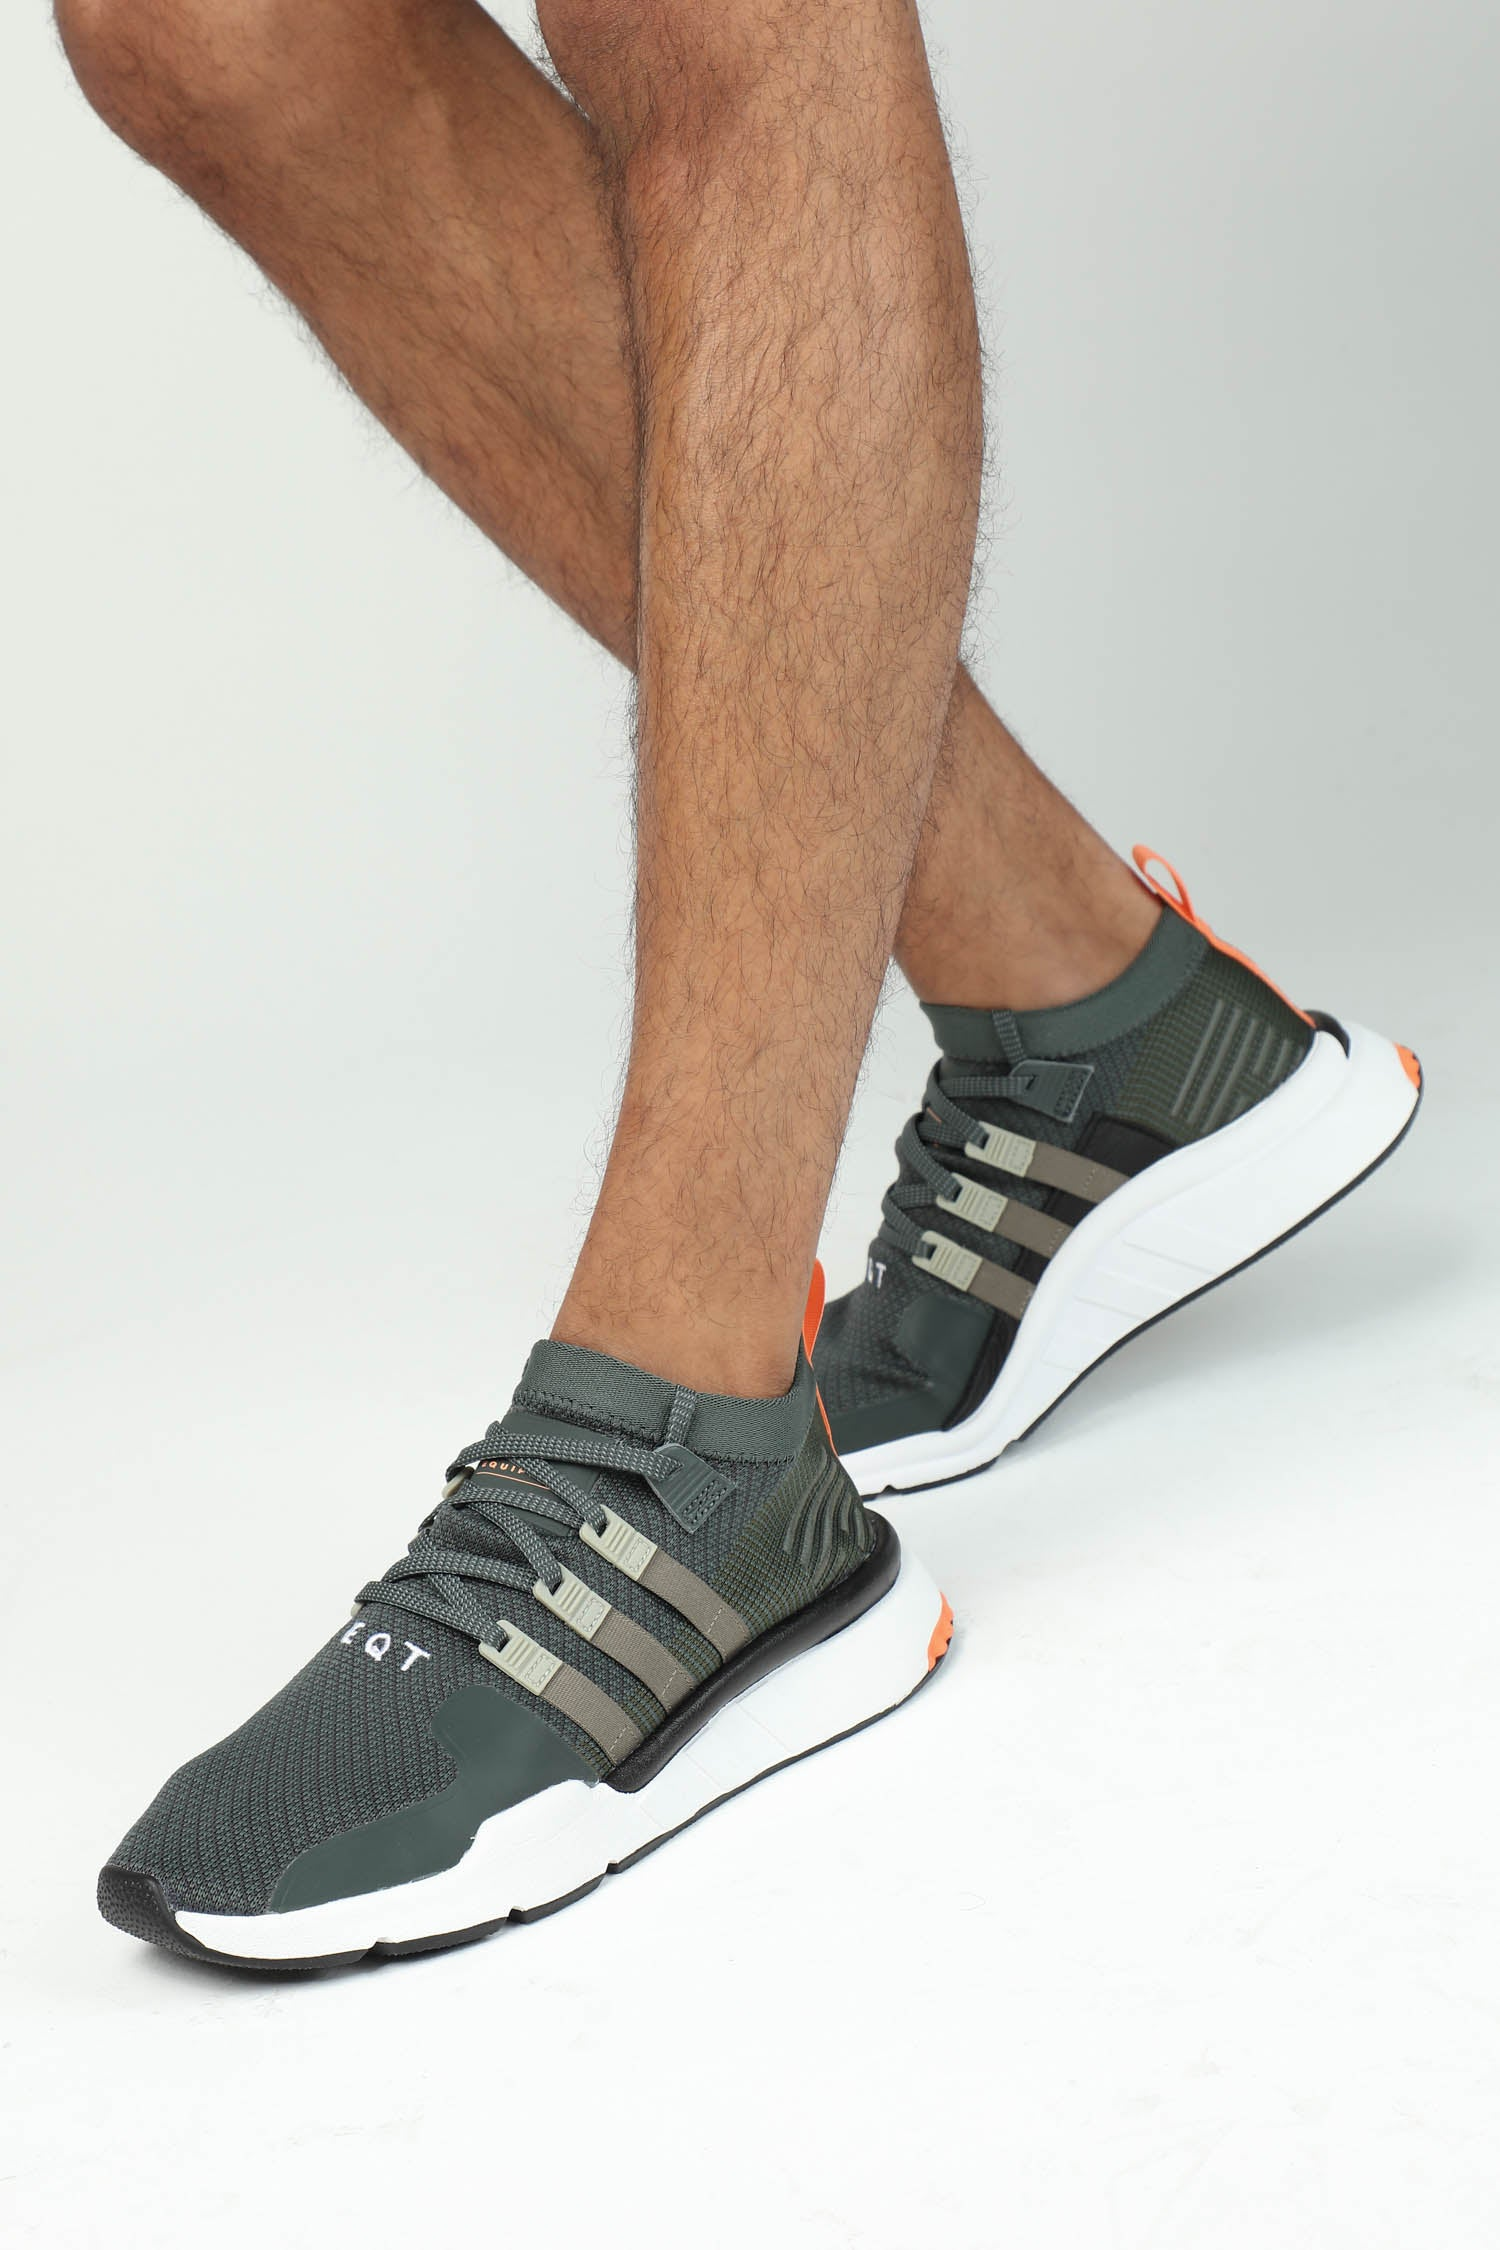 Black And White Adidas Crop Top Eqt Support Adv Cargo Green